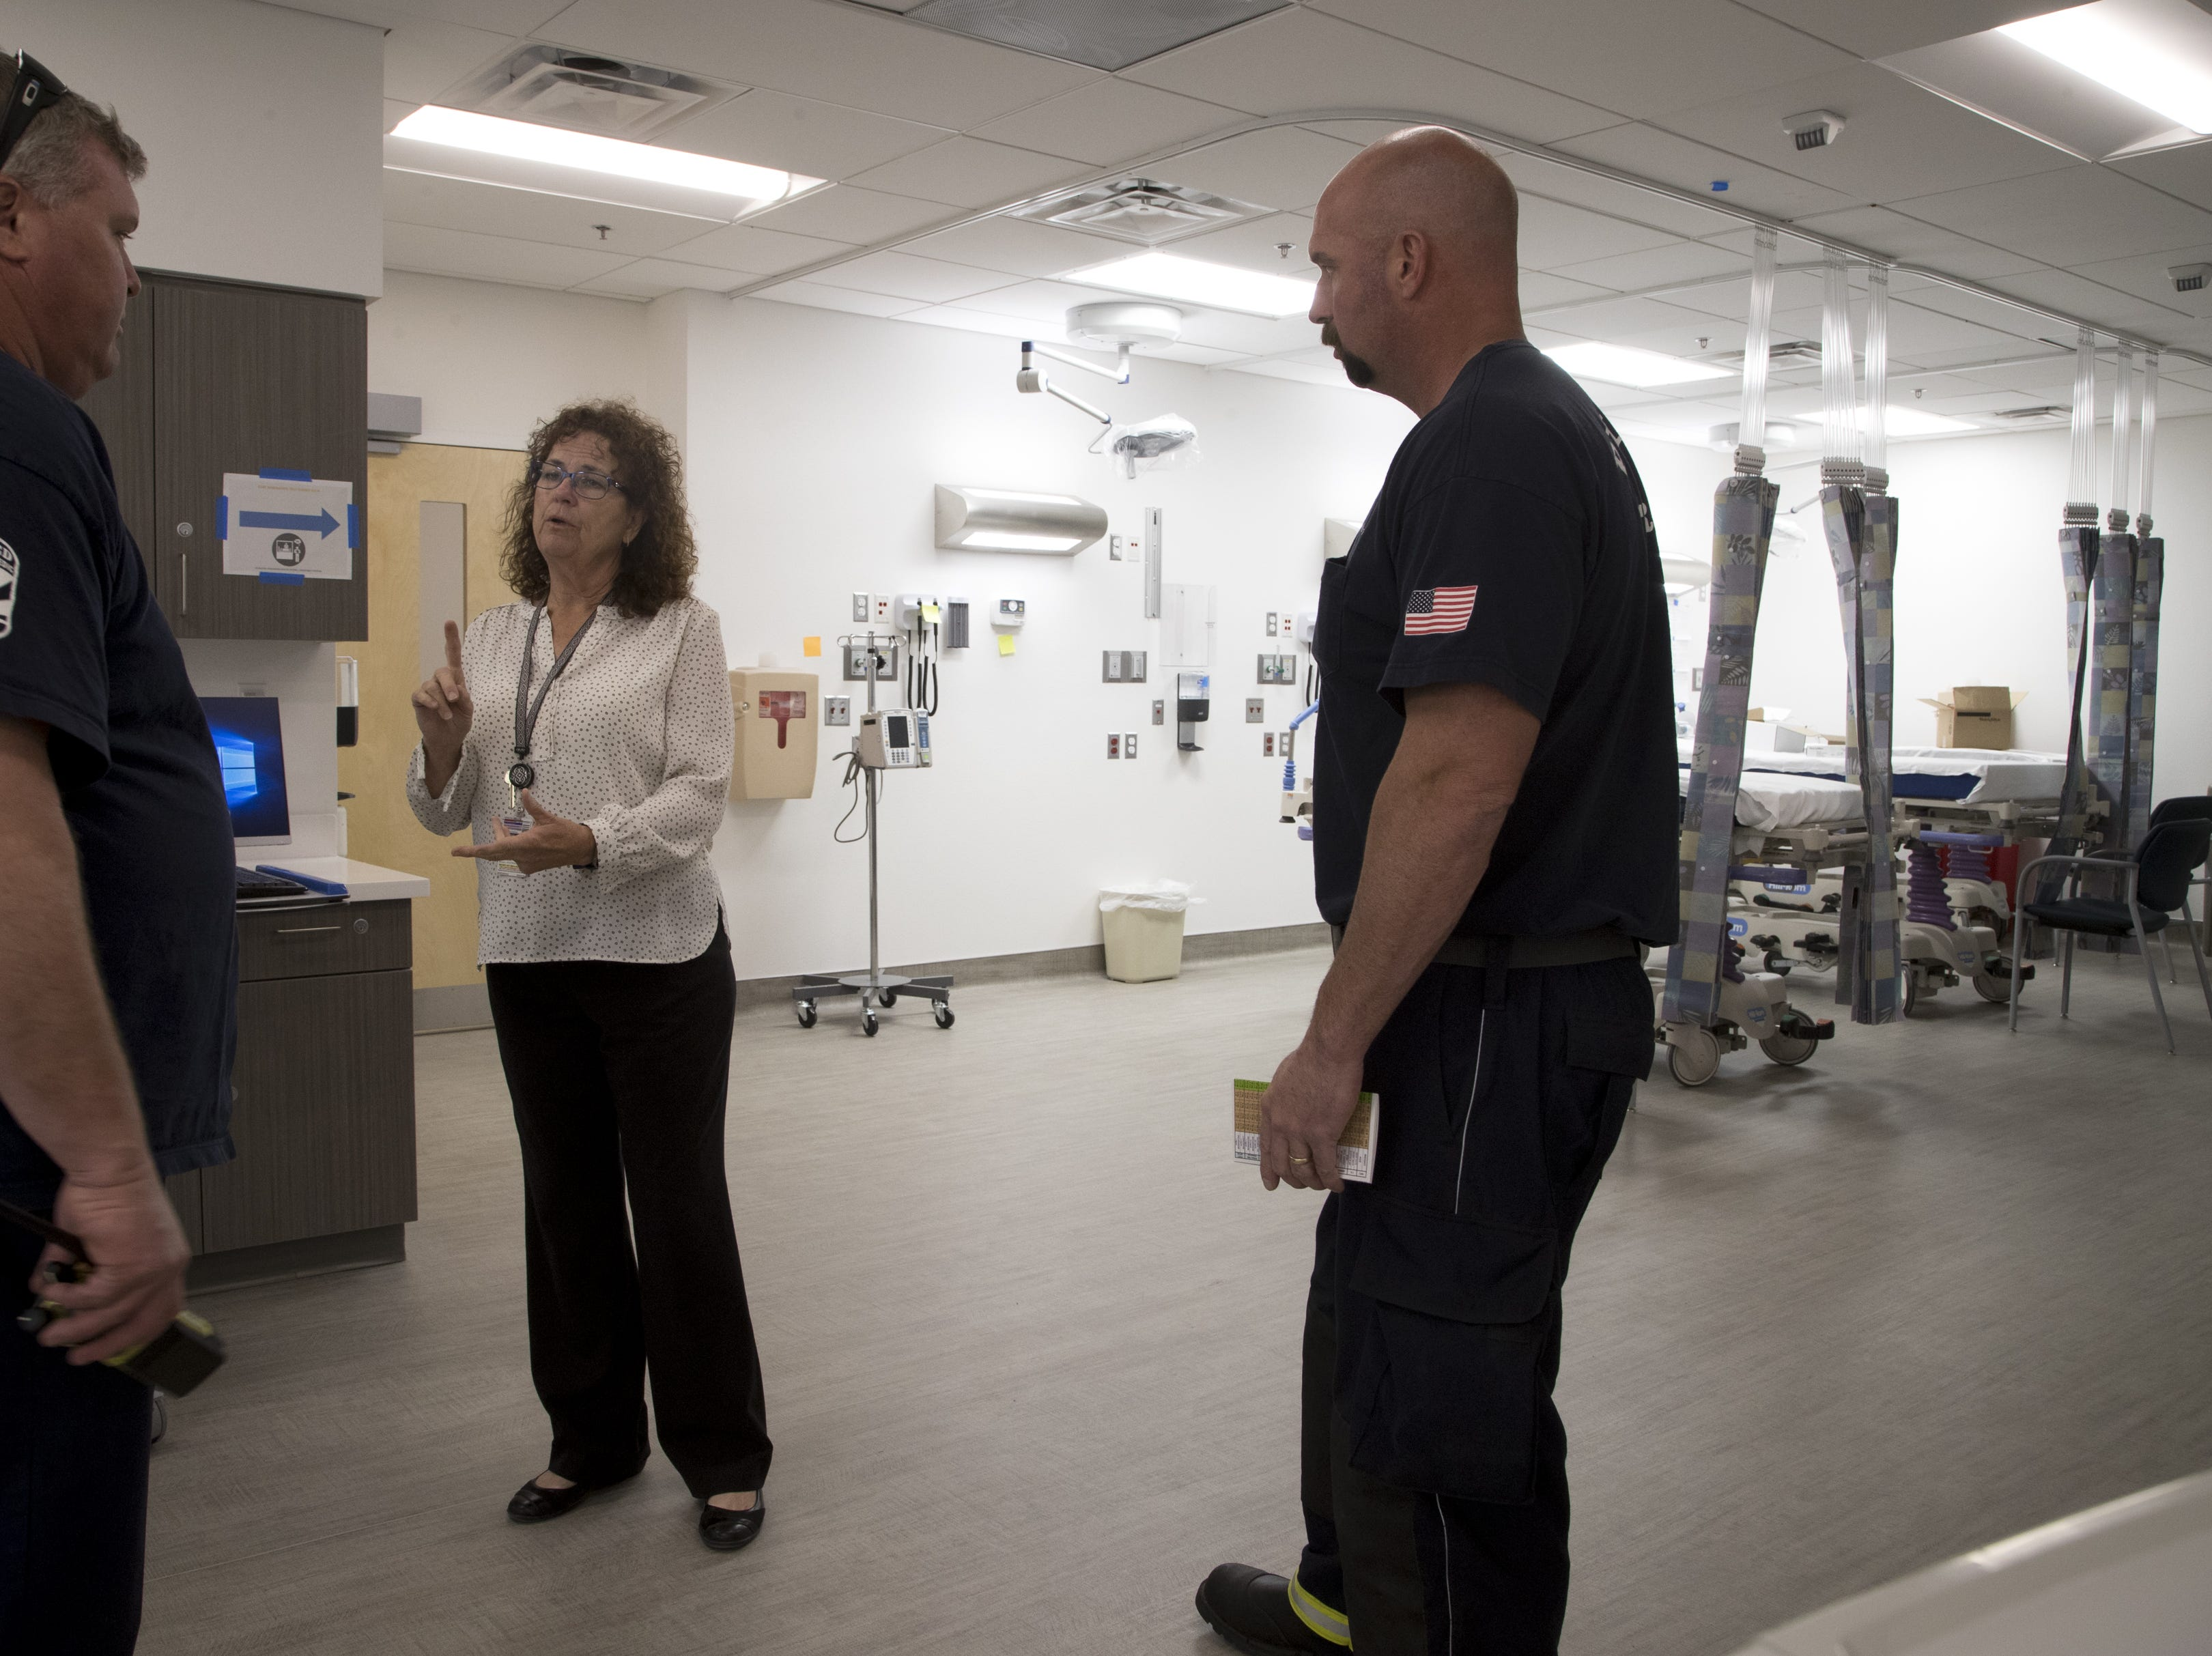 Barb Bovee (center) gives Phoenix Fire Captain Rusty Stalder (left) and firefighter Luke Moran a tour of the Emergency Department at the Maricopa Integrated Health System Maryvale campus on April 1, 2019.